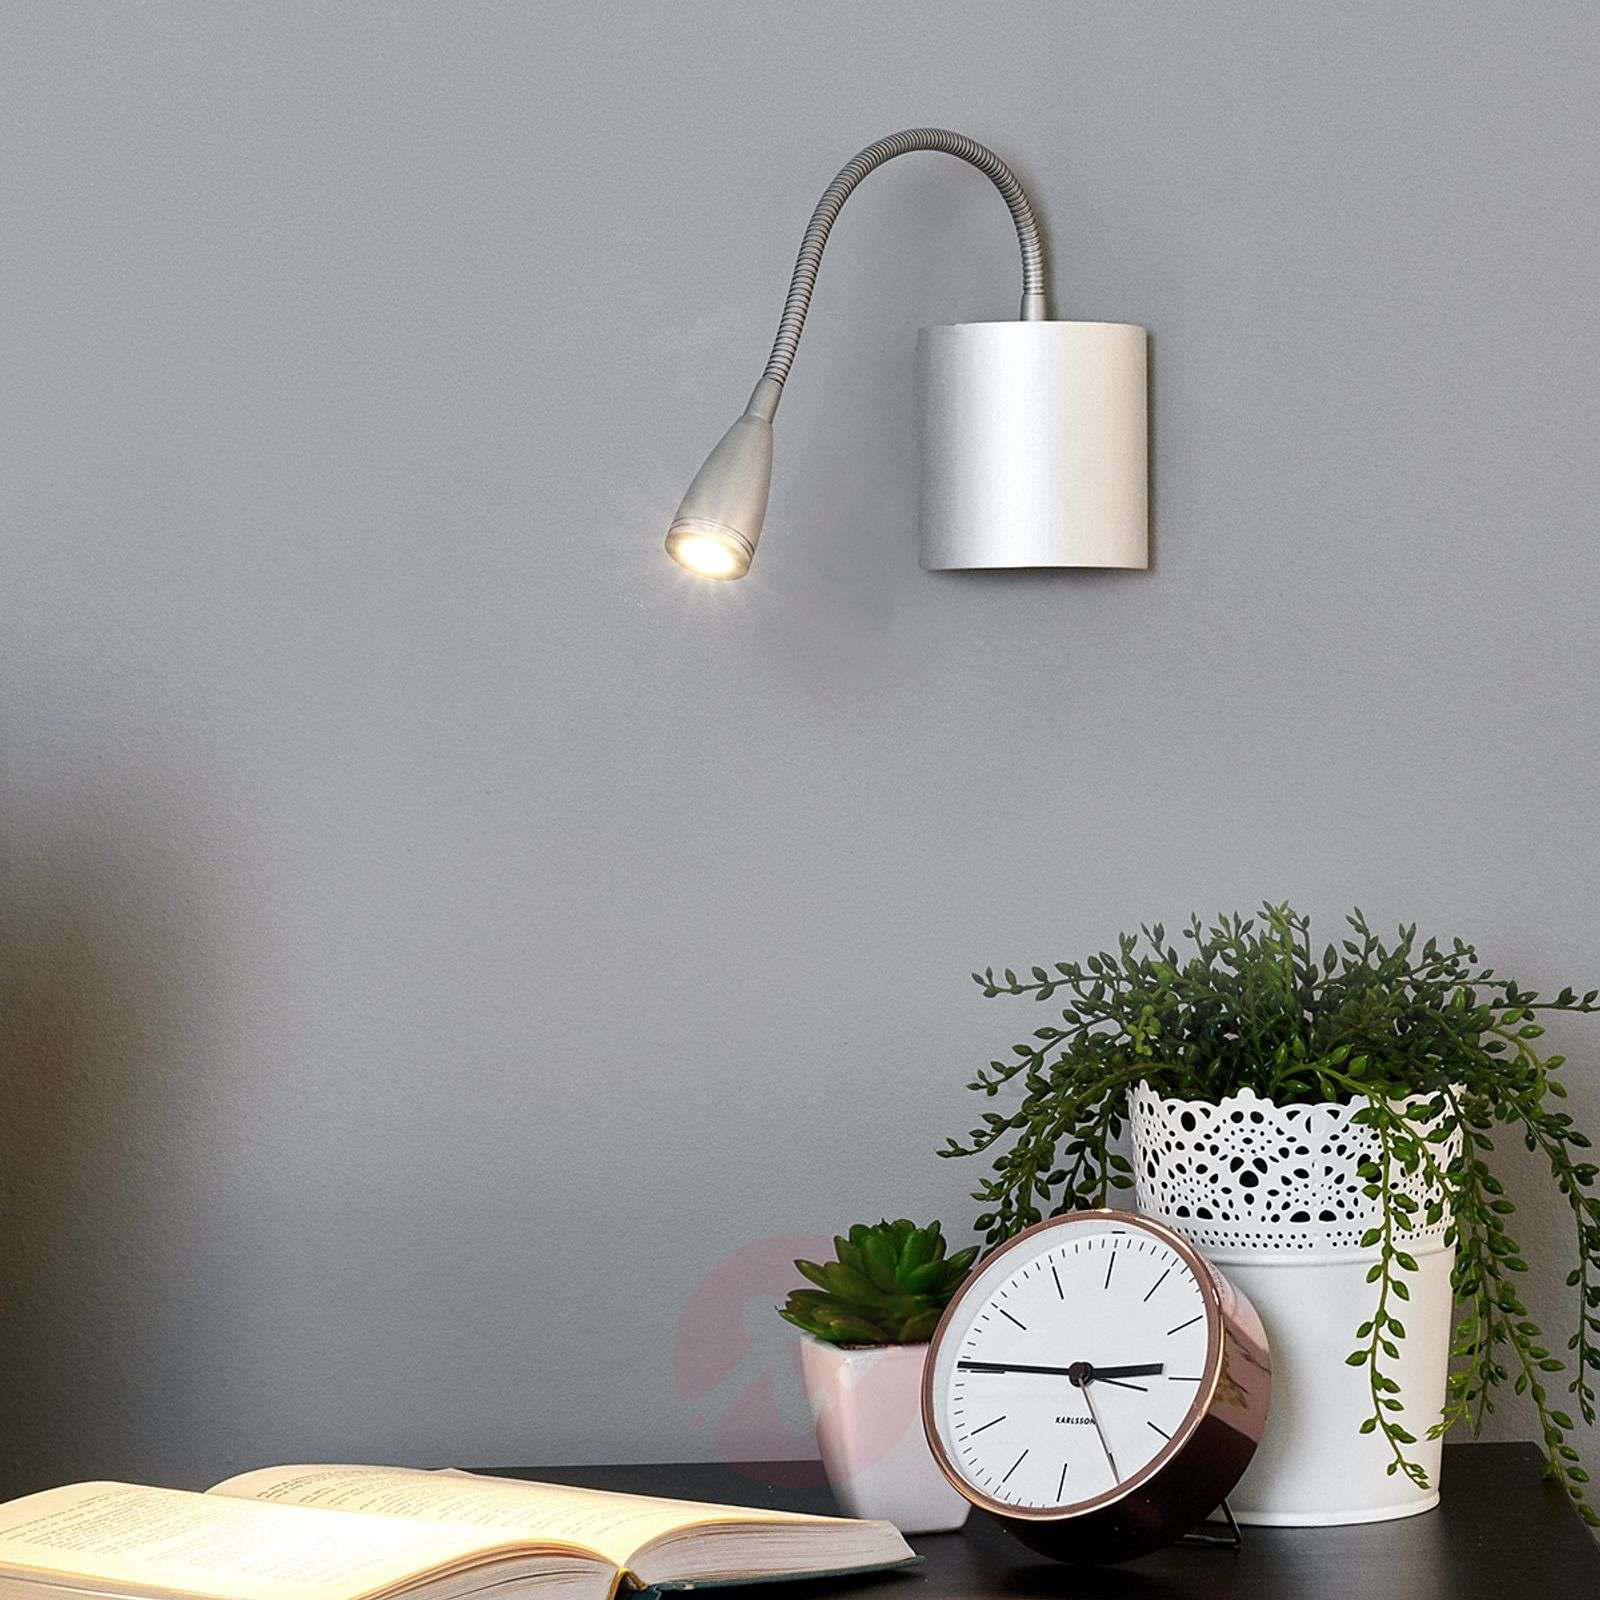 Flexible wall reading light Anneli with LED-9976003-01